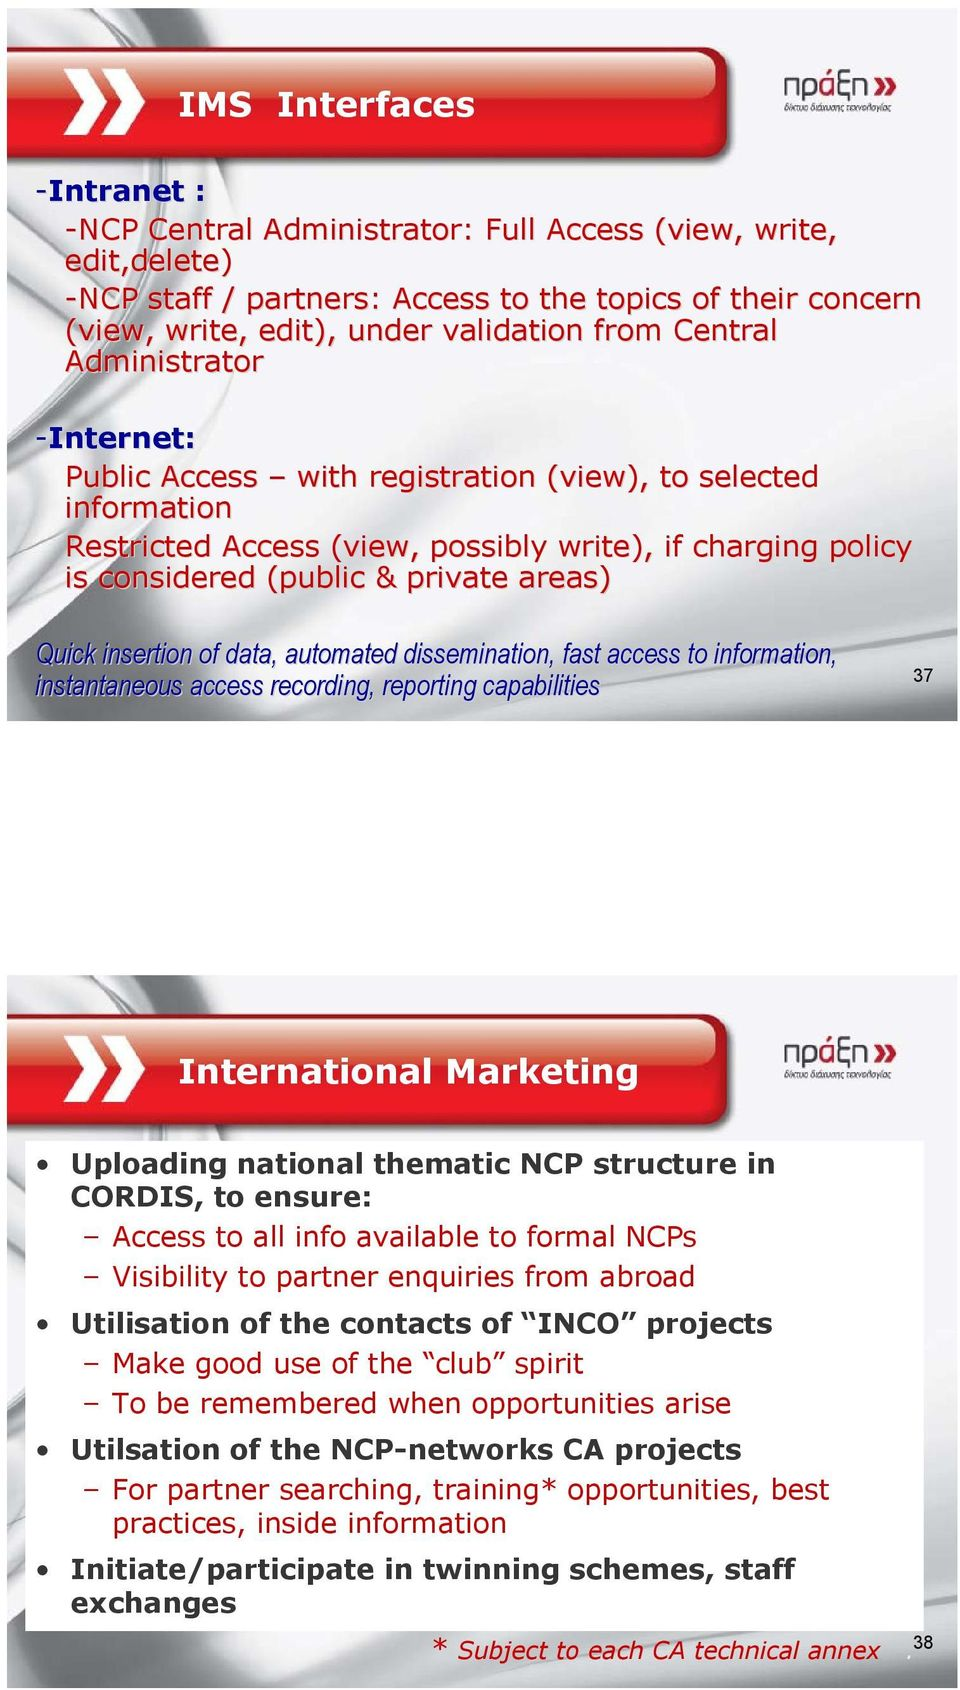 Quick insertion of data, automated dissemination, fast access to information, instantaneous access recording, reporting capabilities 37 International Marketing Uploading national thematic NCP